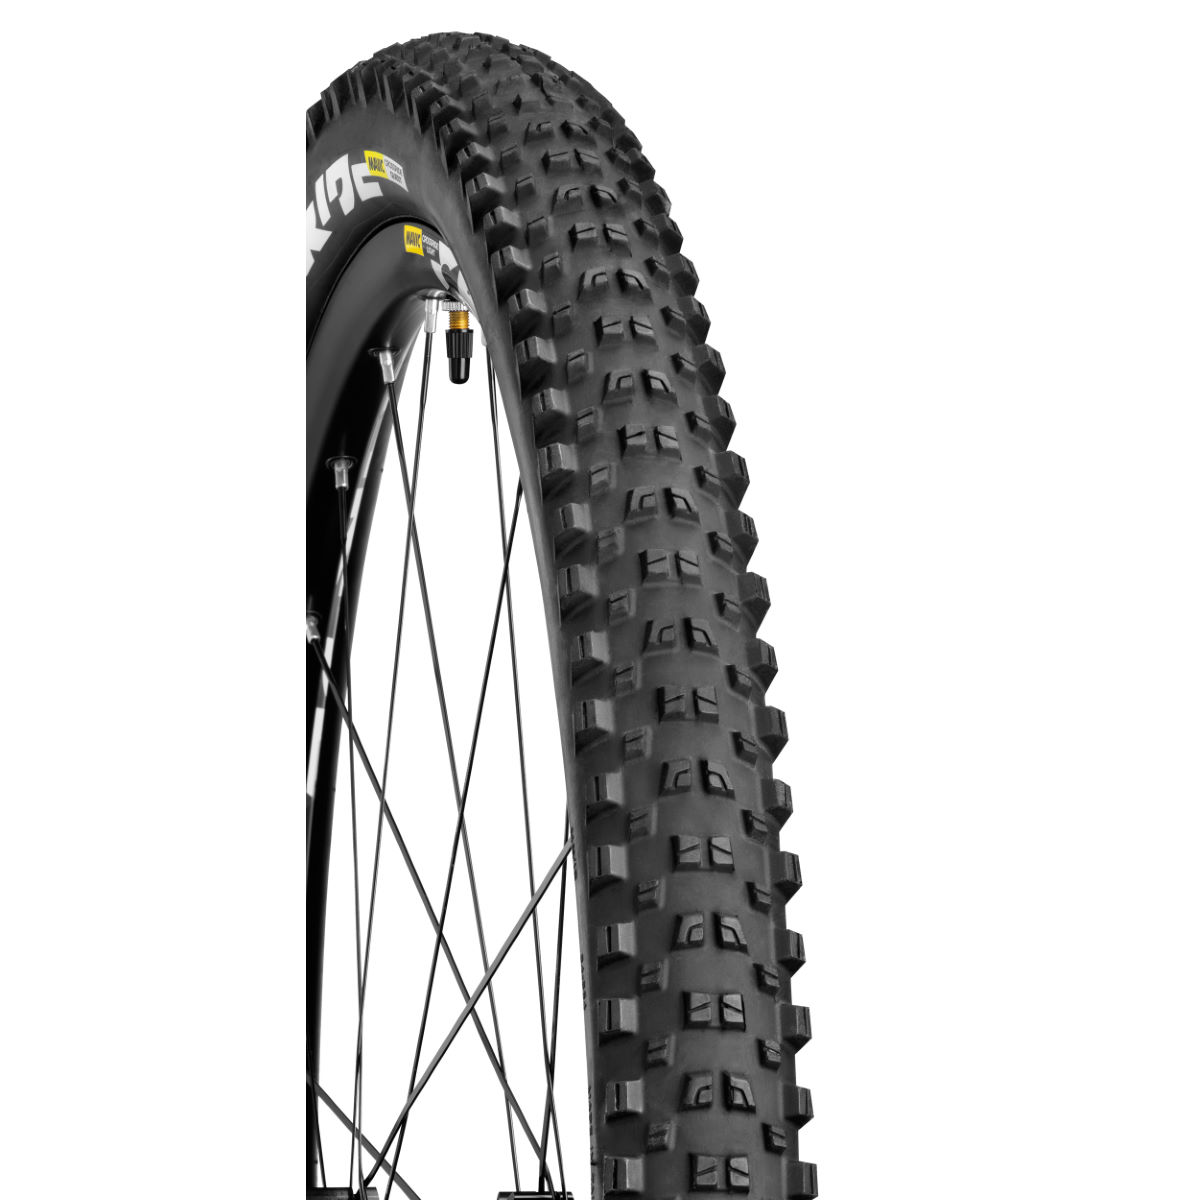 Pneu VTT Mavic Crossride Quest Tubeless 26 pouces - 26 x 2.4 26''